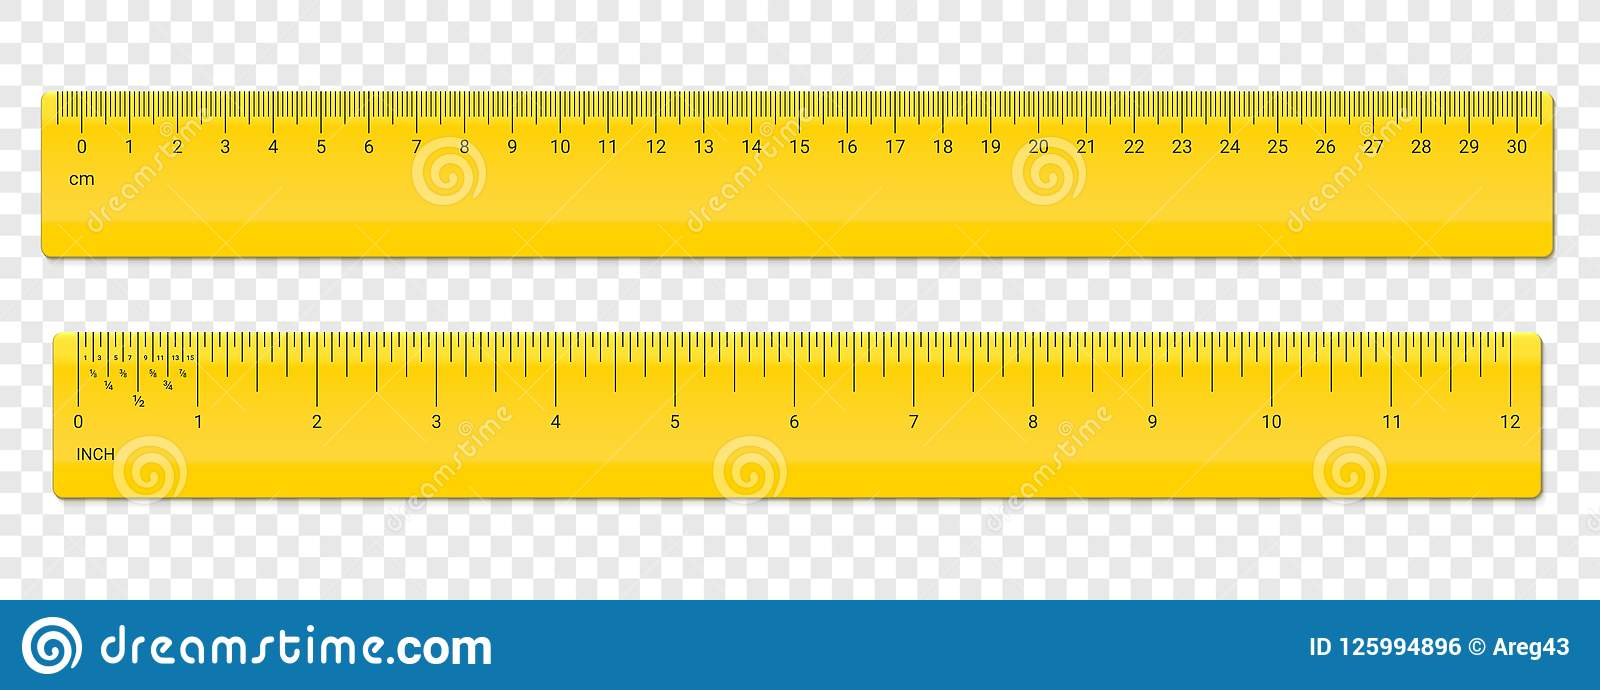 Ruler Centimeter And Inches Scale Vector Plastic Stock Vector